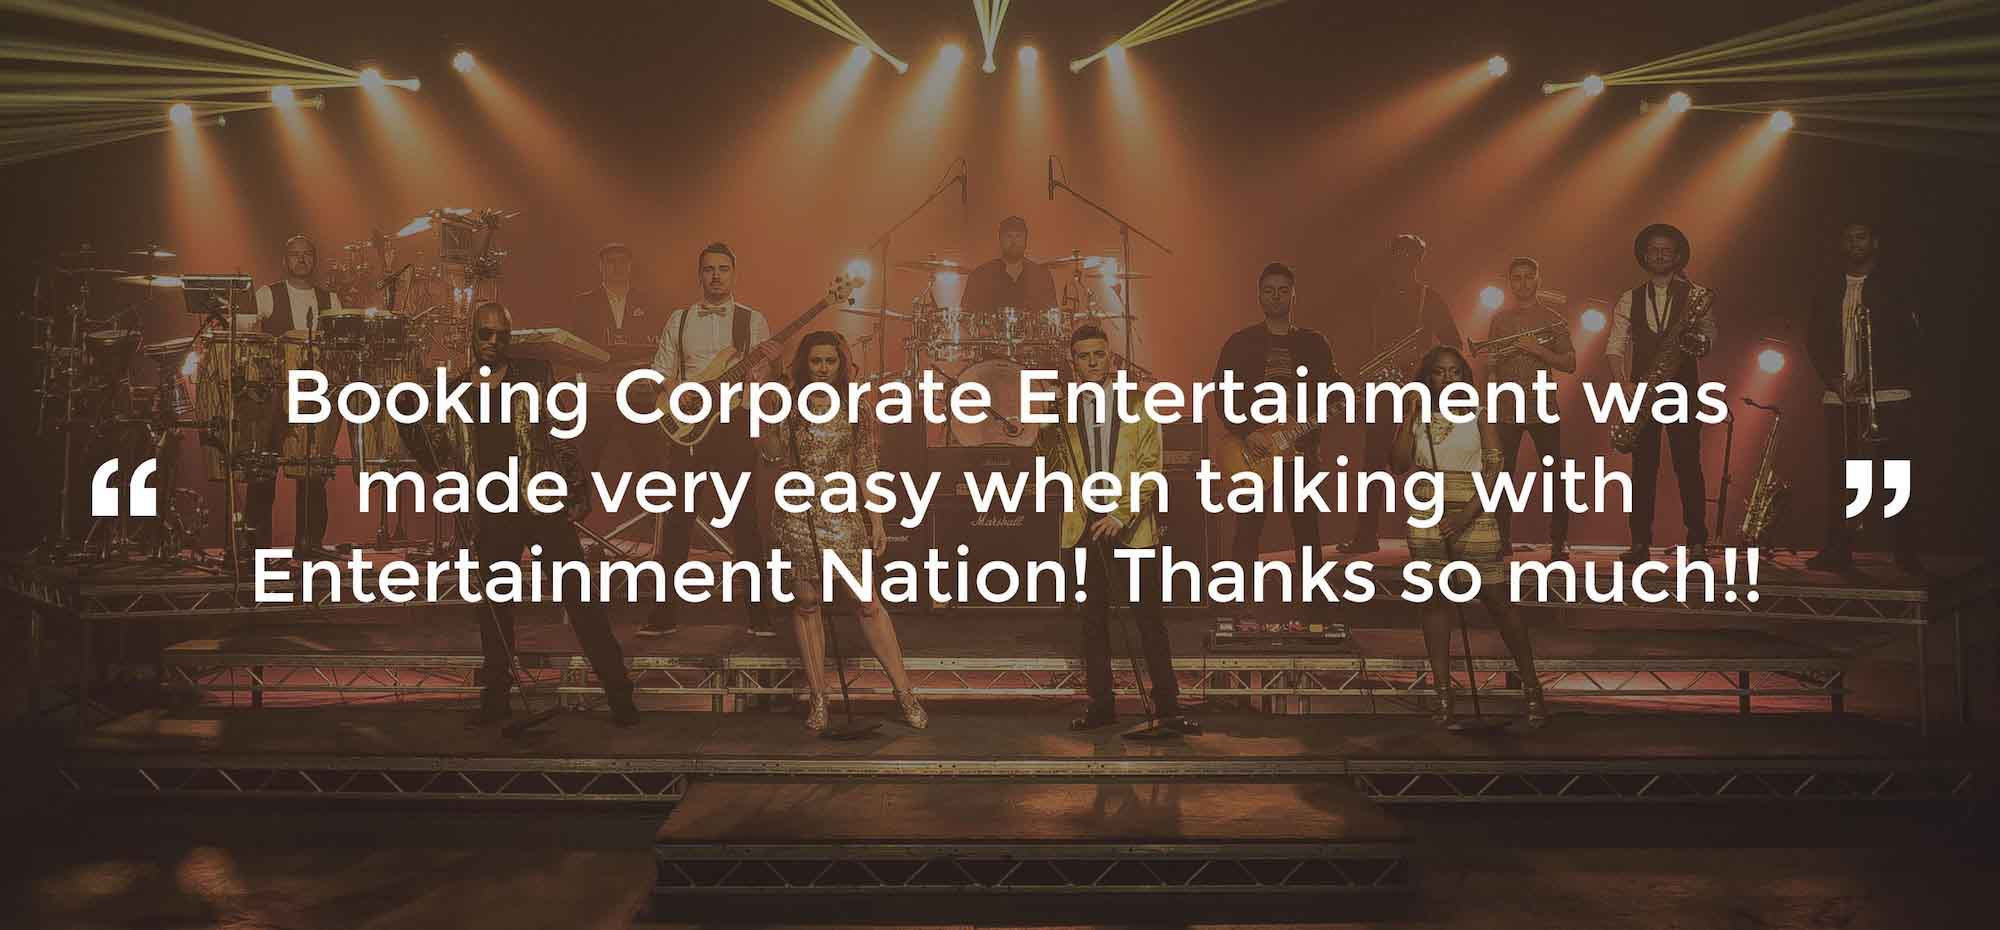 Client Review of Corporate Entertainment Isle Of Wight